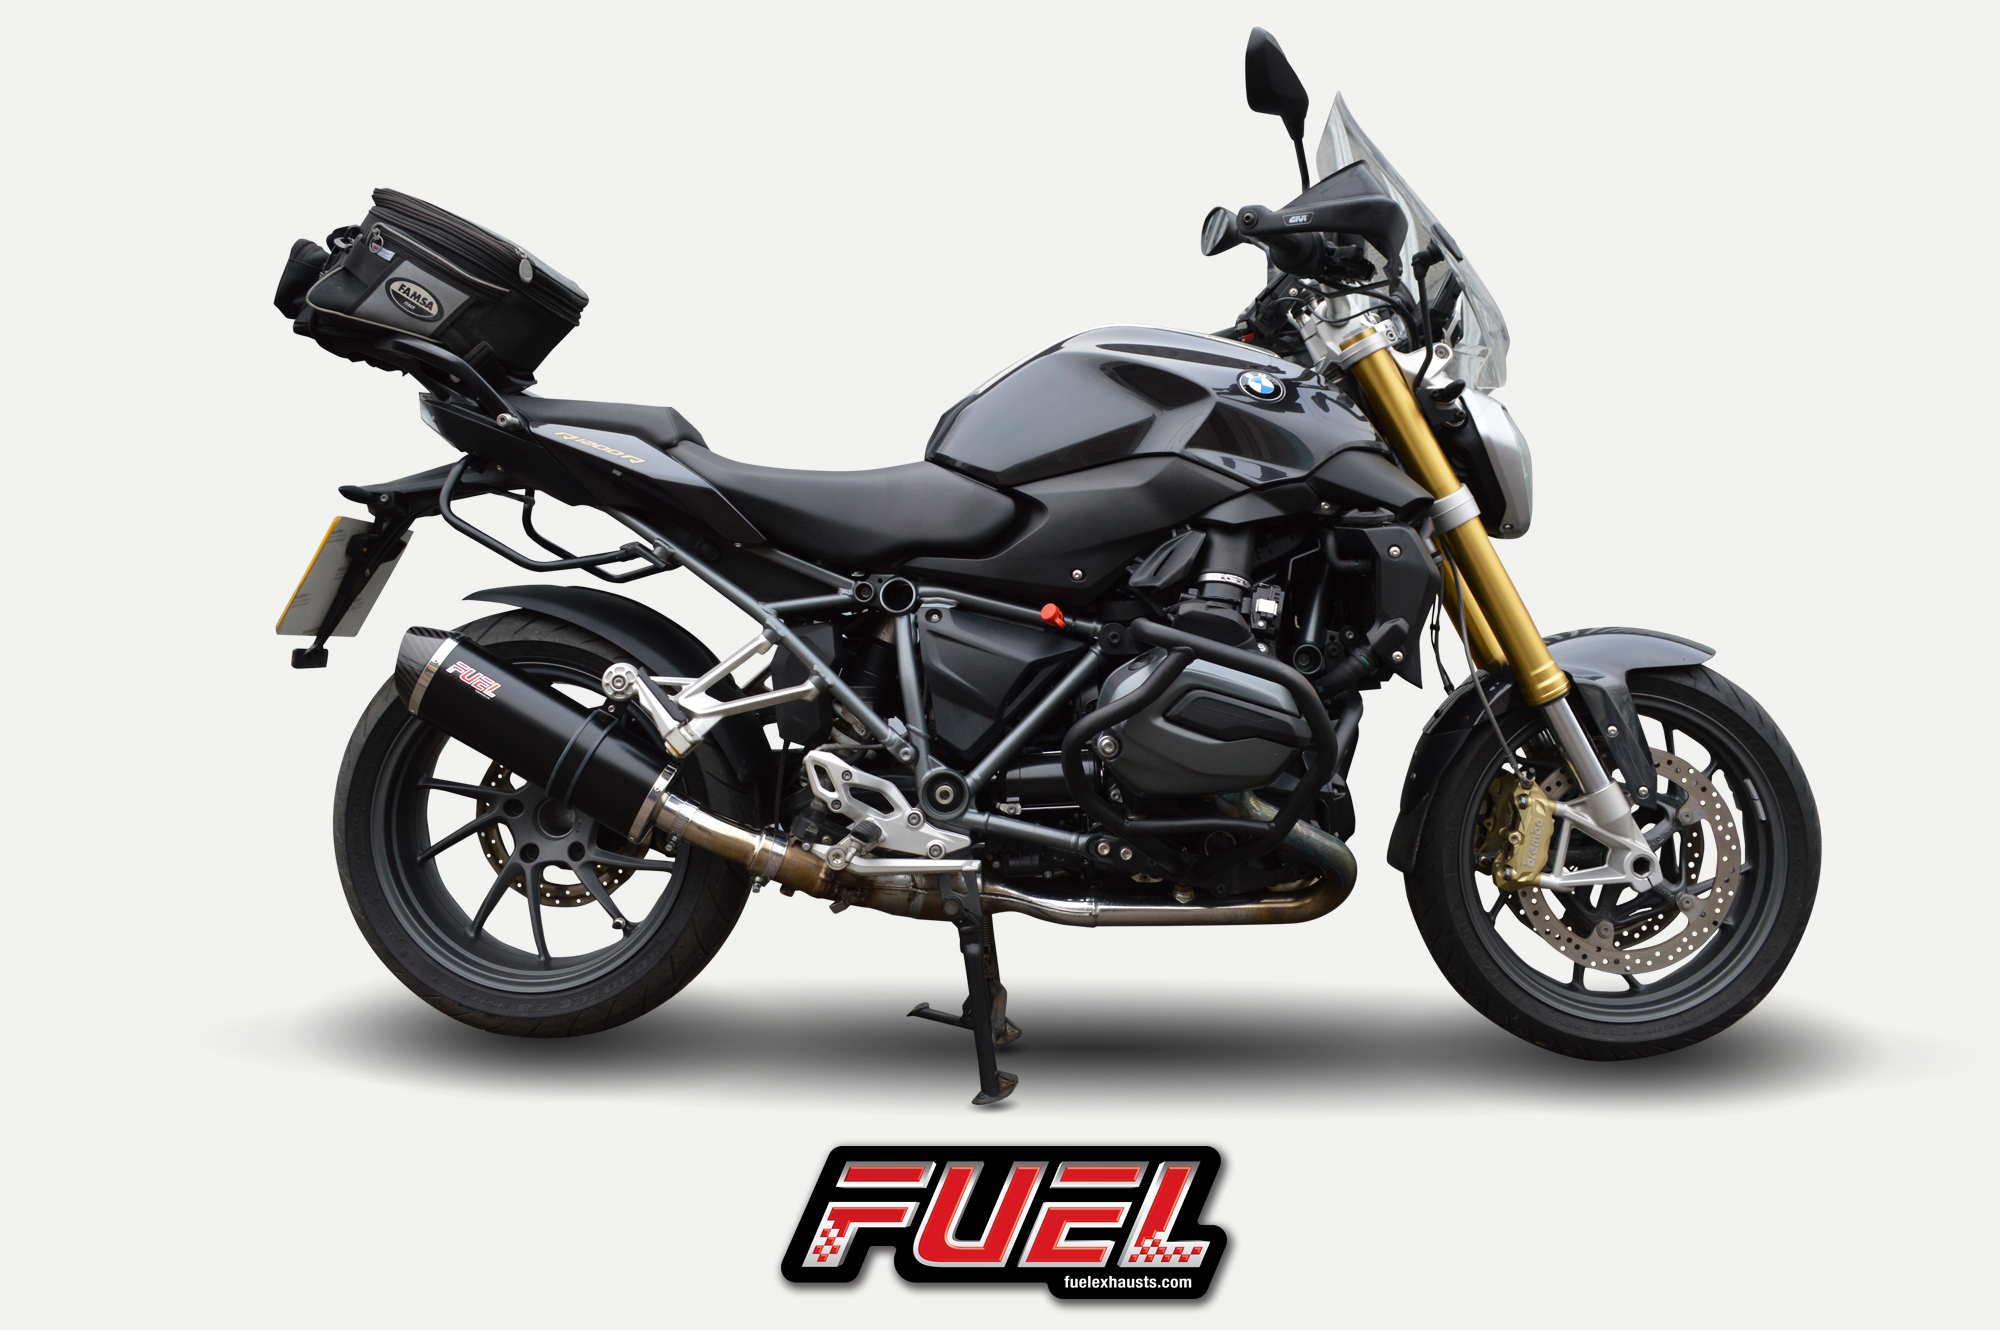 bmw r1200r 2015 fuel exhausts available now. Black Bedroom Furniture Sets. Home Design Ideas